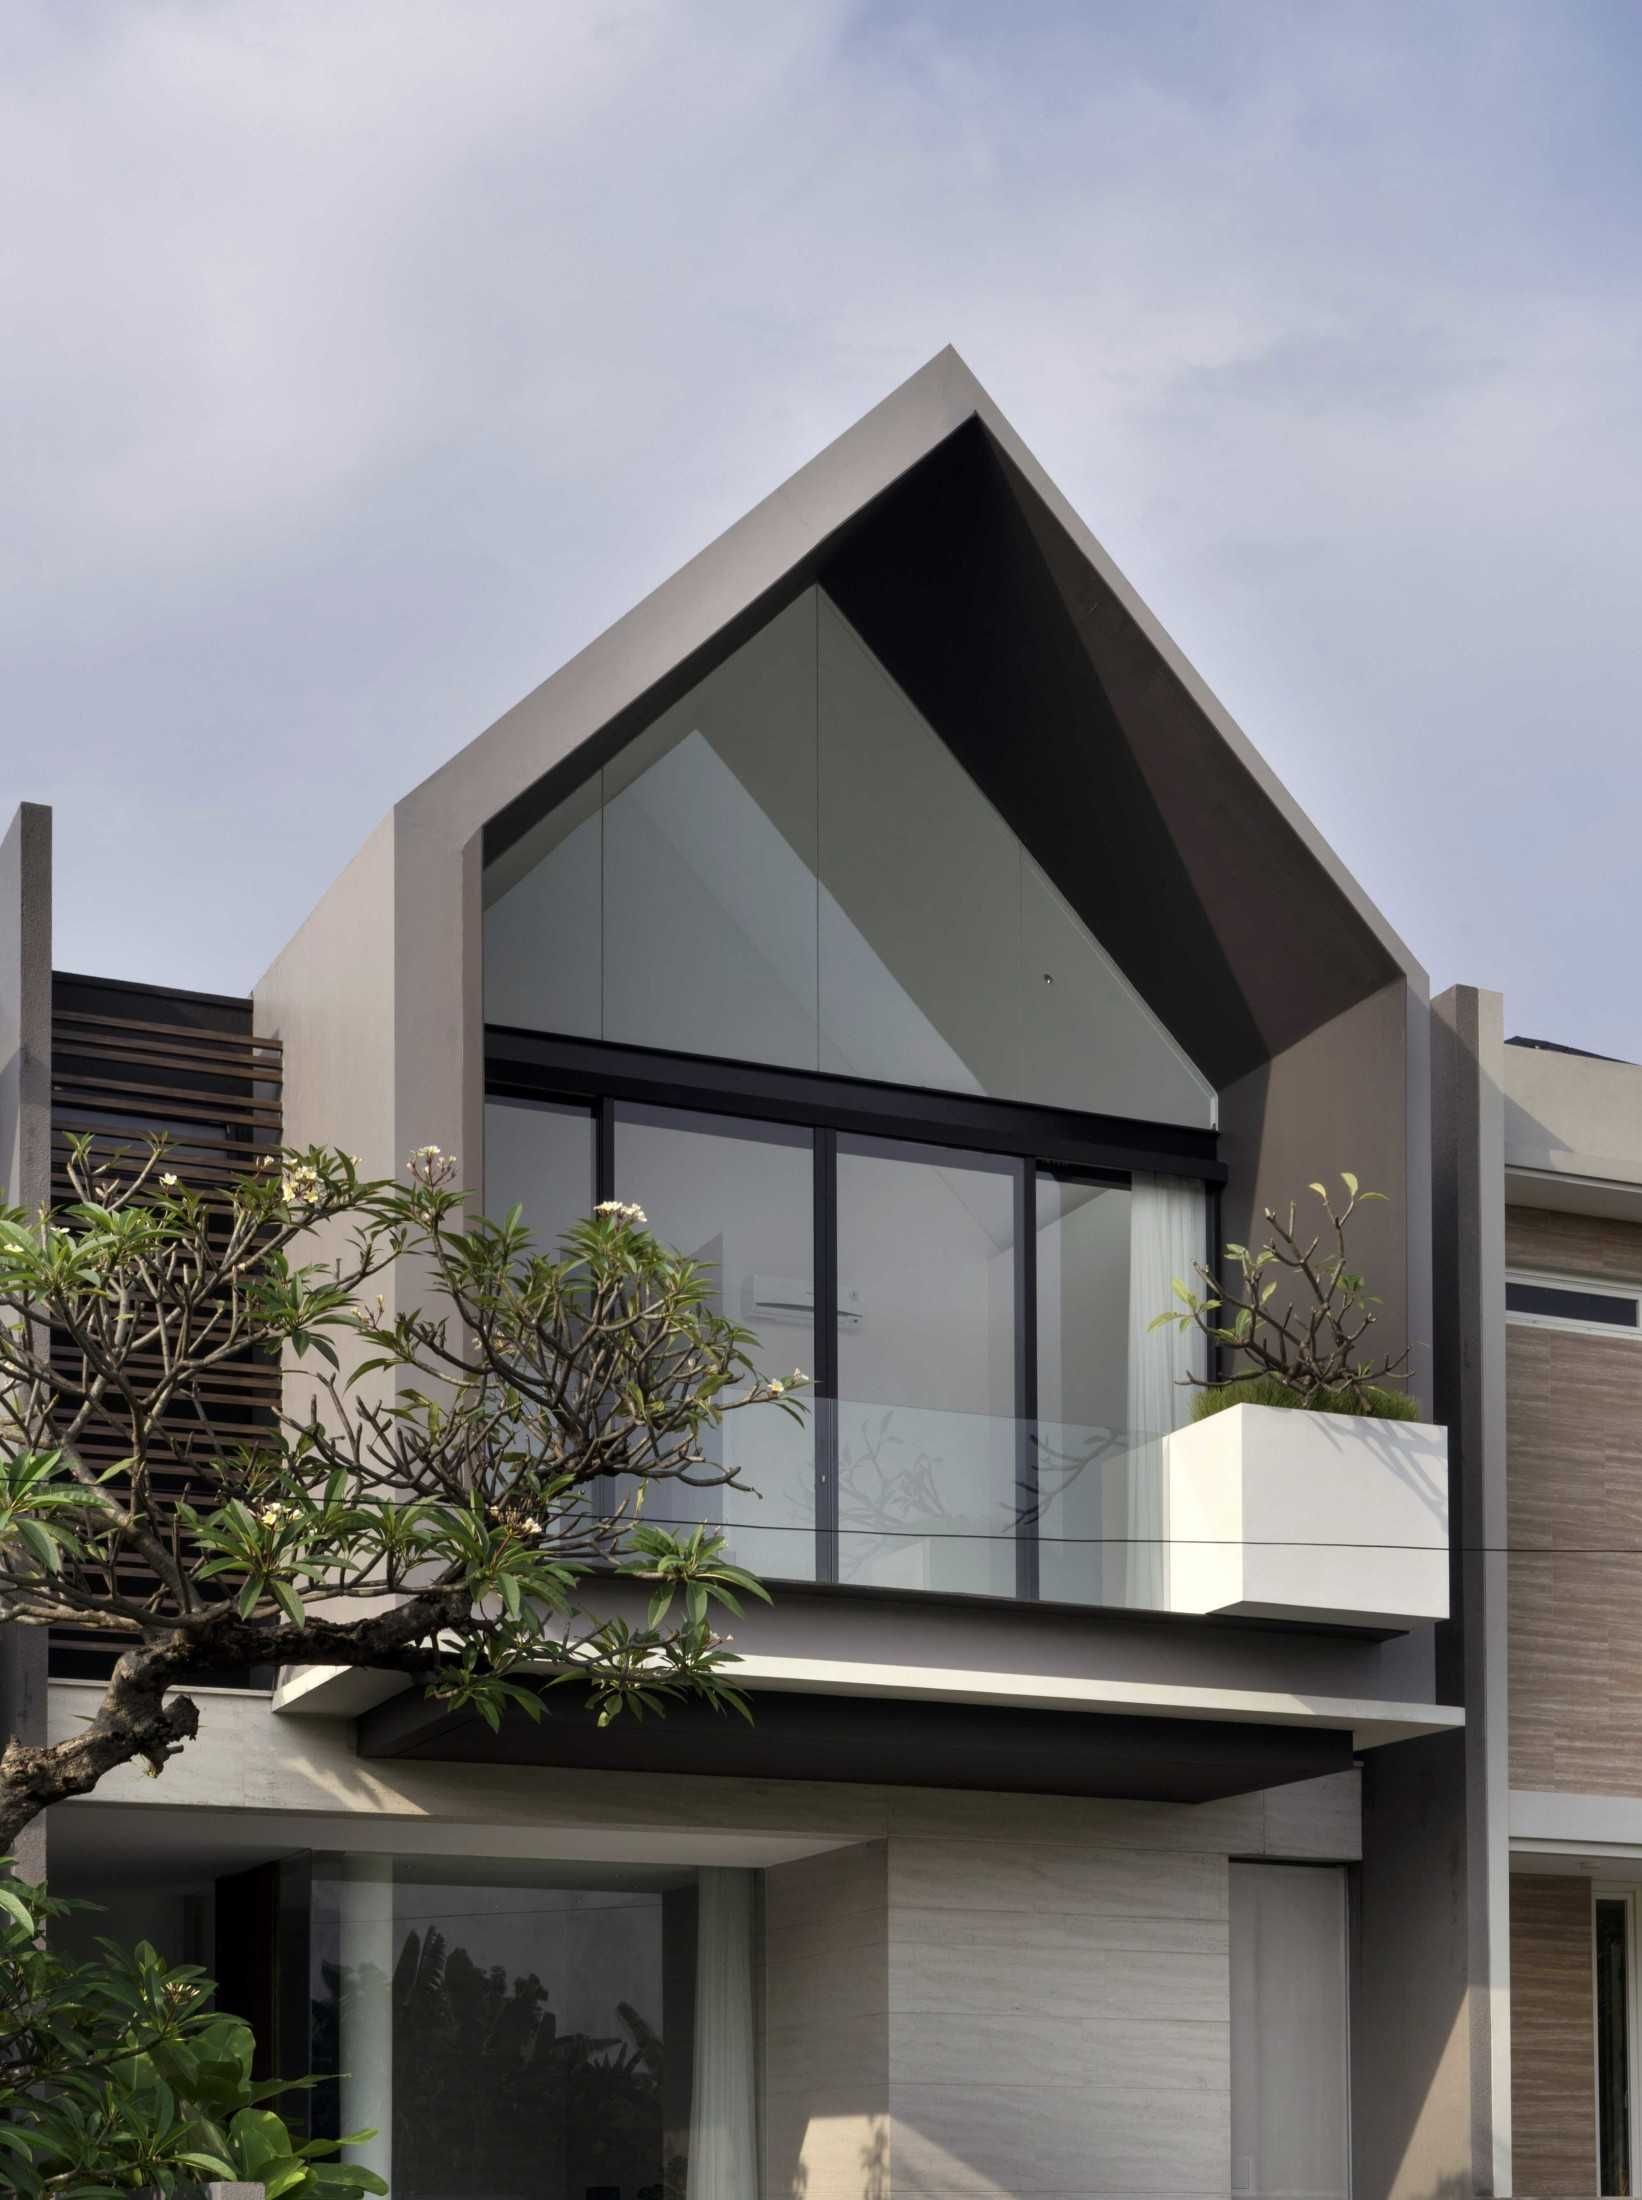 Simple Projects Architecture 'hhh' House Surabaya, Kota Sby, Jawa Timur, Indonesia  Simple-Projects-Architecture-Hhh-House  75042